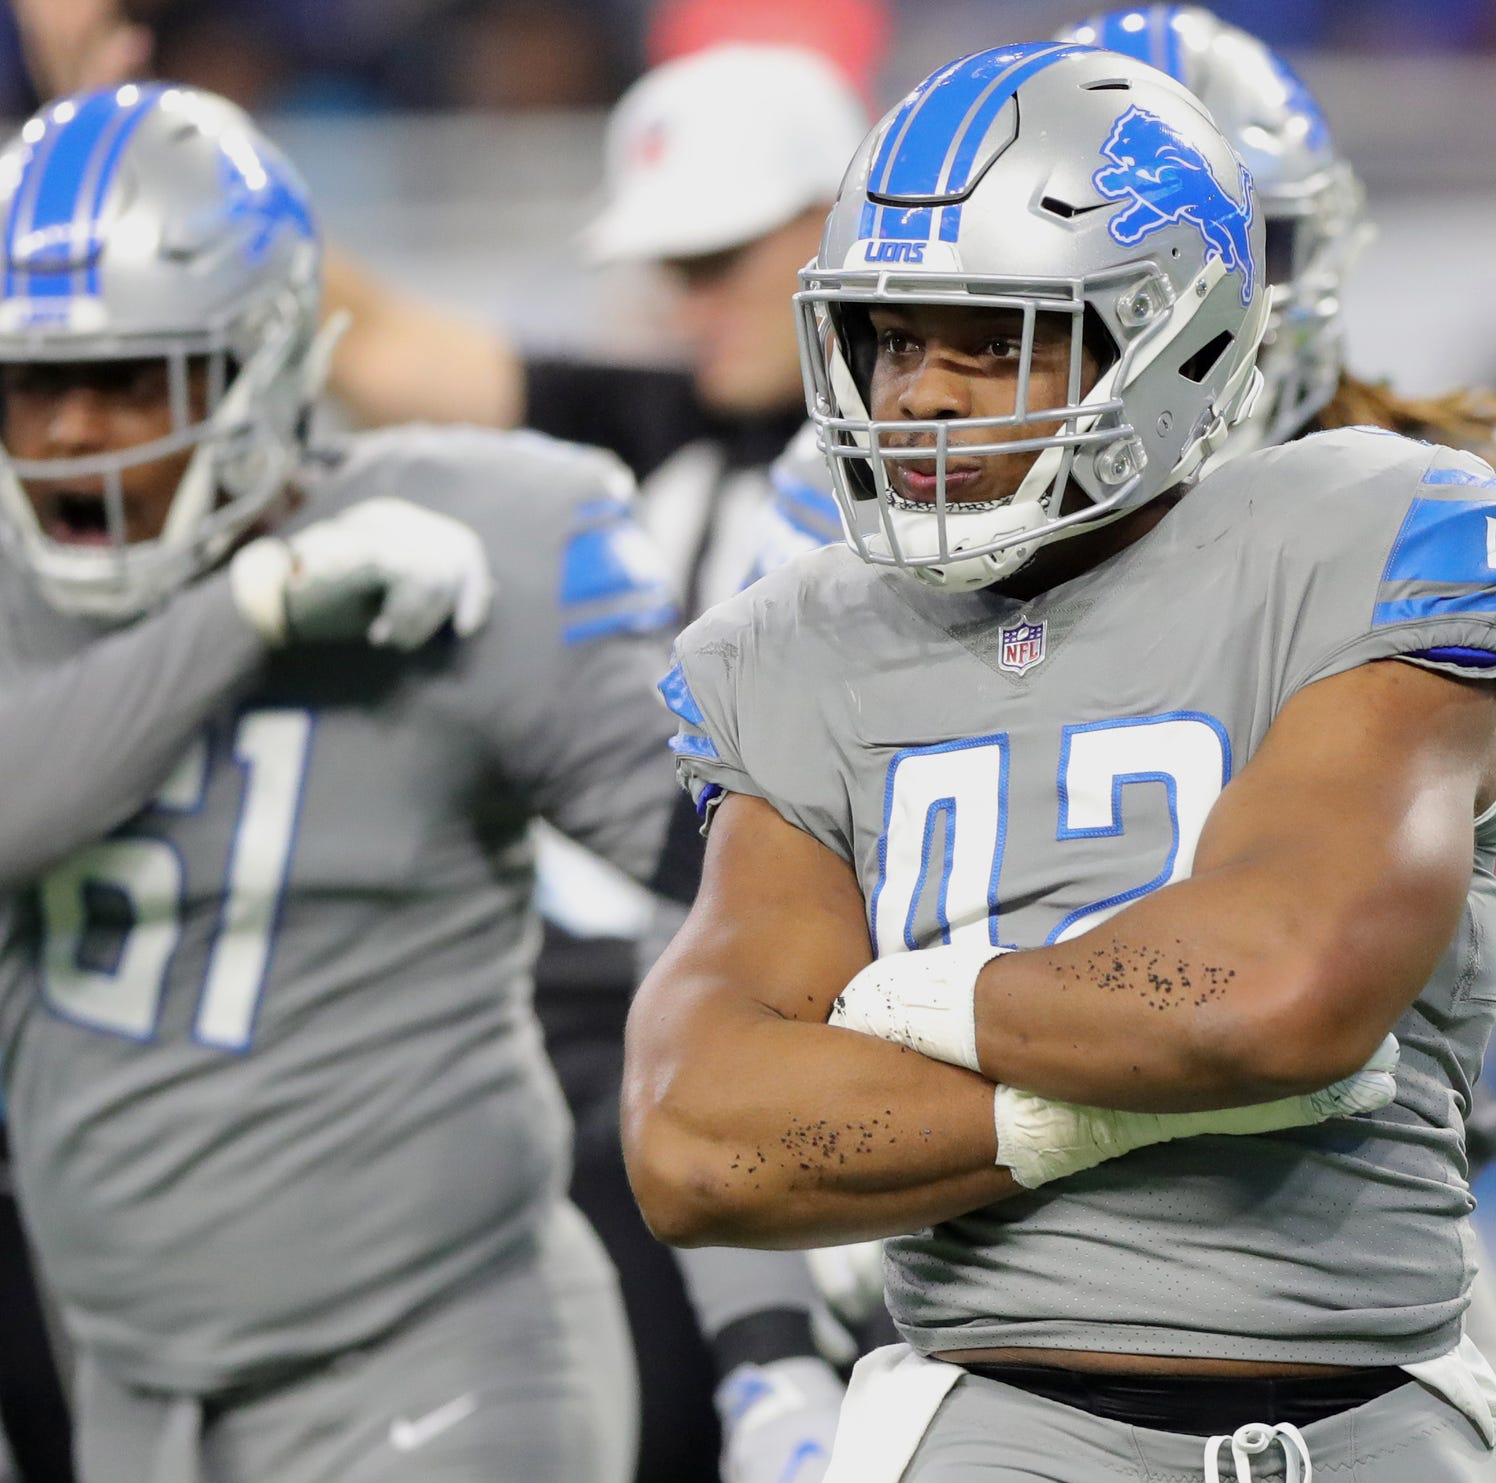 Detroit Lions vs. Chicago Bears: Scouting report and prediction